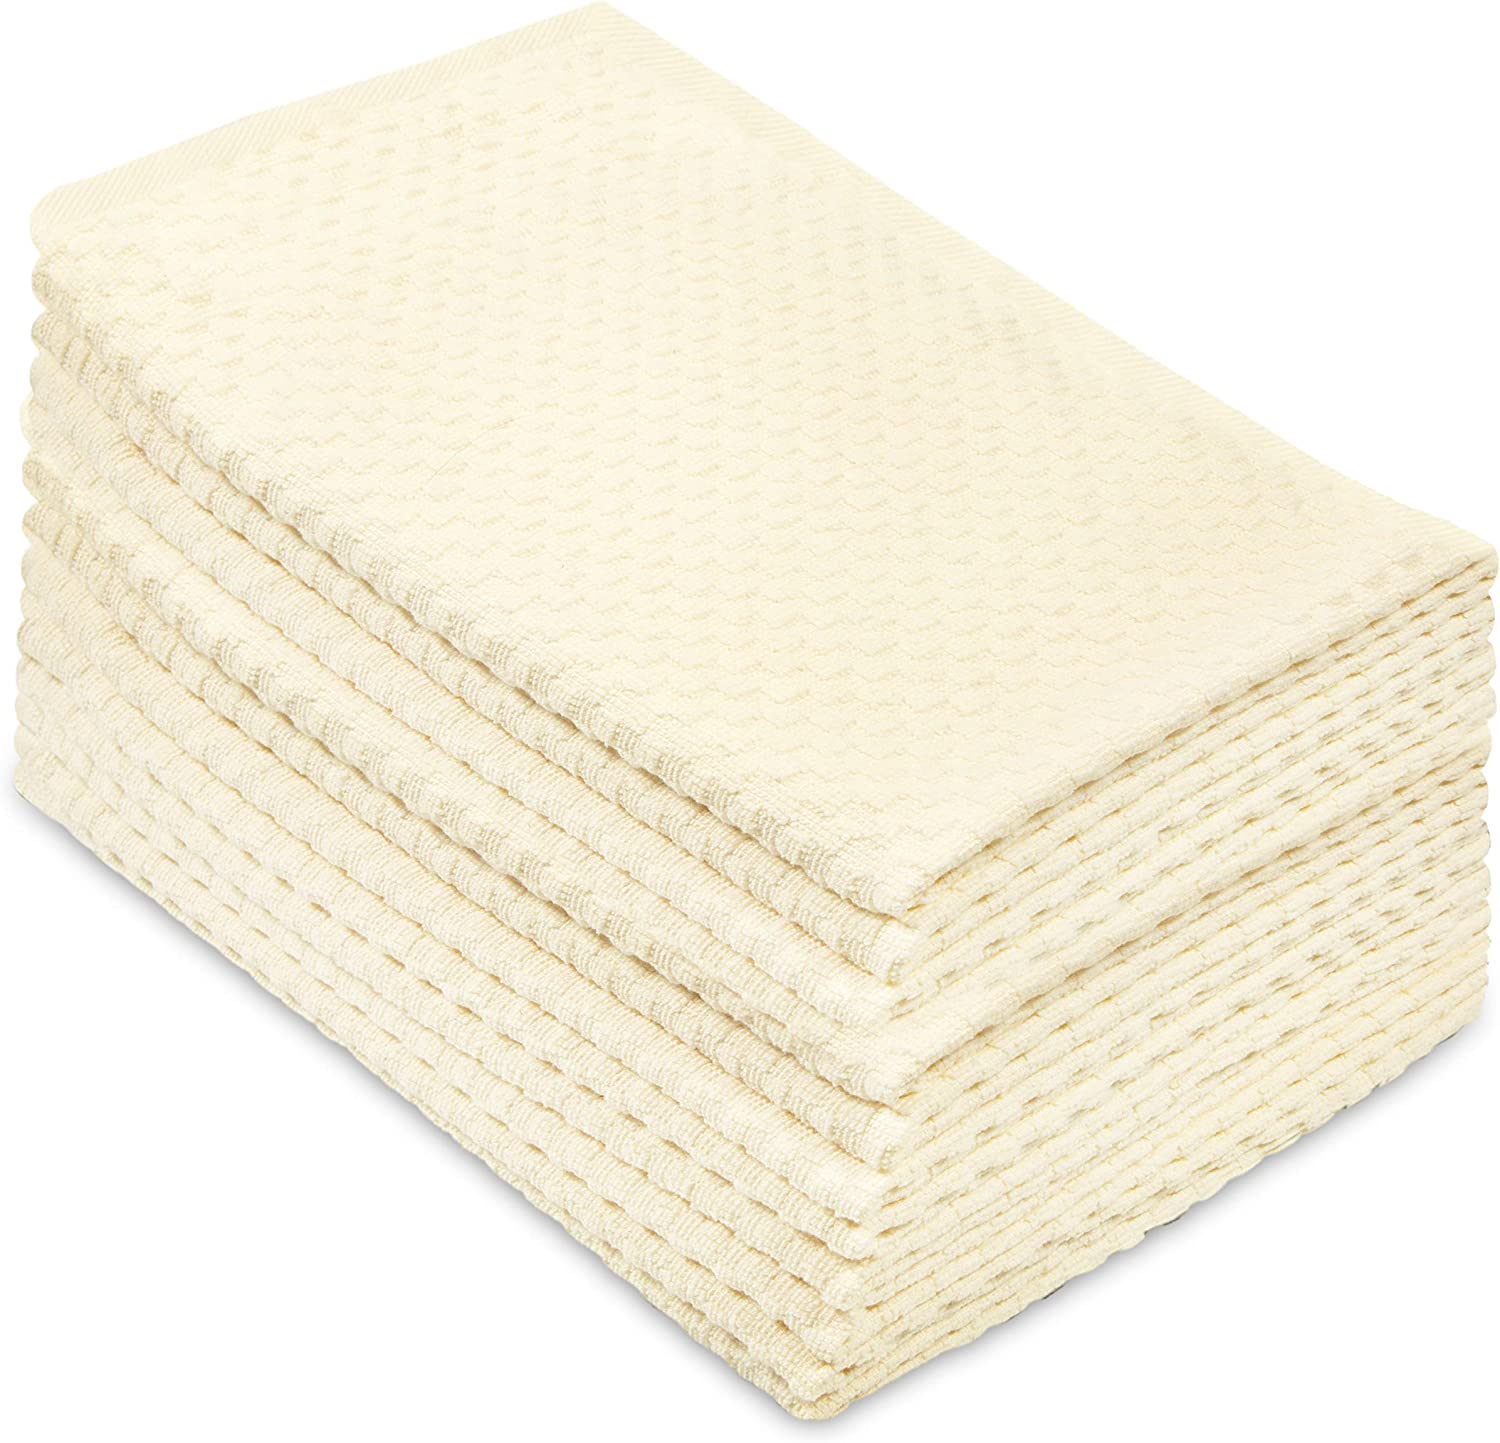 Cotton Craft - 12 Pack - Euro Cafe Waffle Weave Terry Kitchen Towels - 16x28 Inches - Ivory - 400 GSM Quality - 100% Ringspun 2 Ply Cotton - Highly Absorbent Low Lint - Multi Purpose